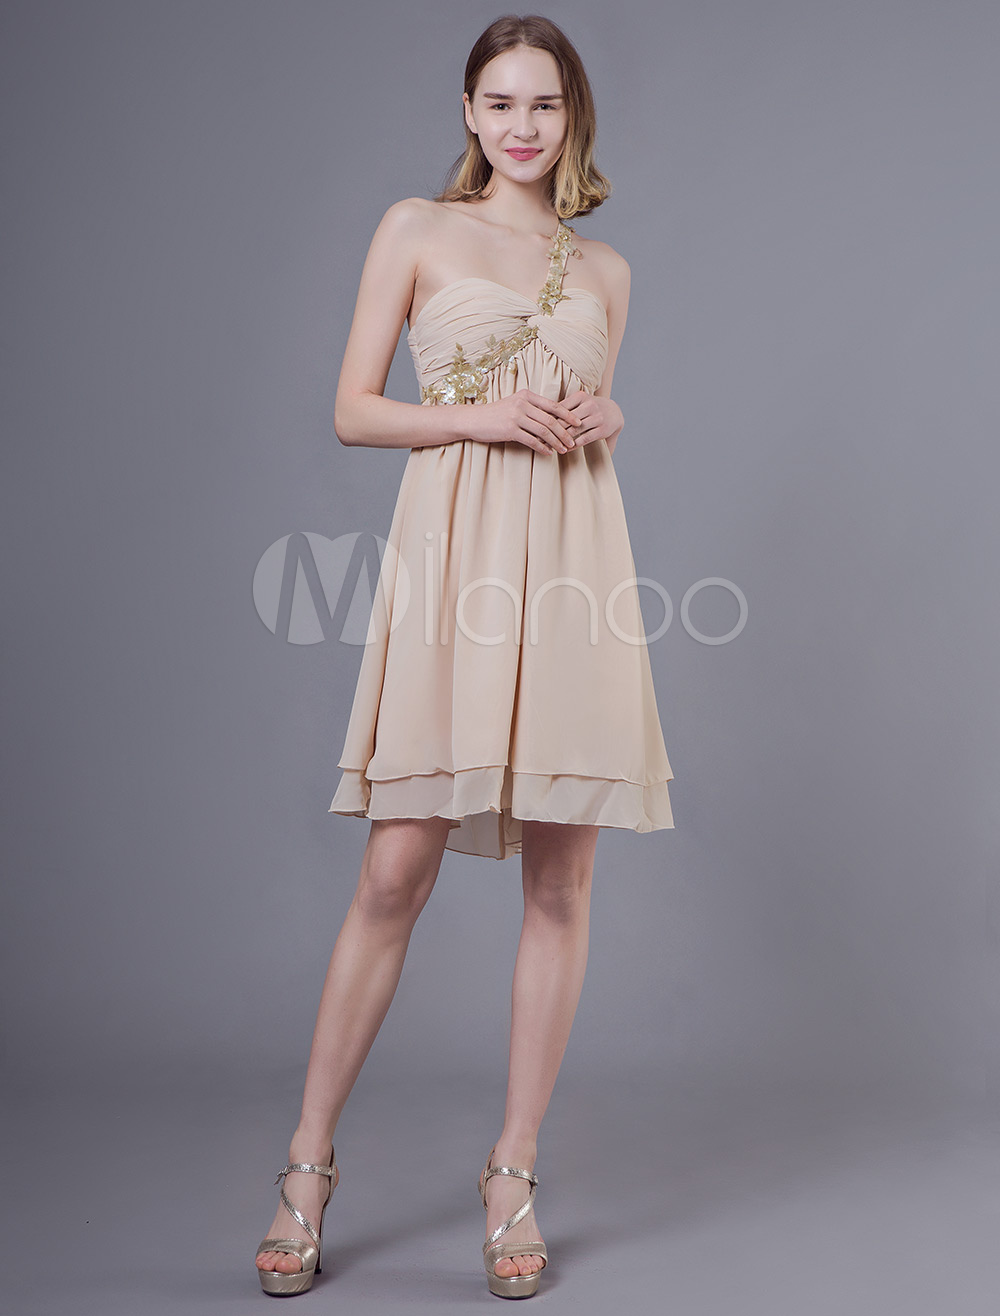 new products e36ae 09640 Abito da sera corto da cerimonia di laurea in chiffon color champagne